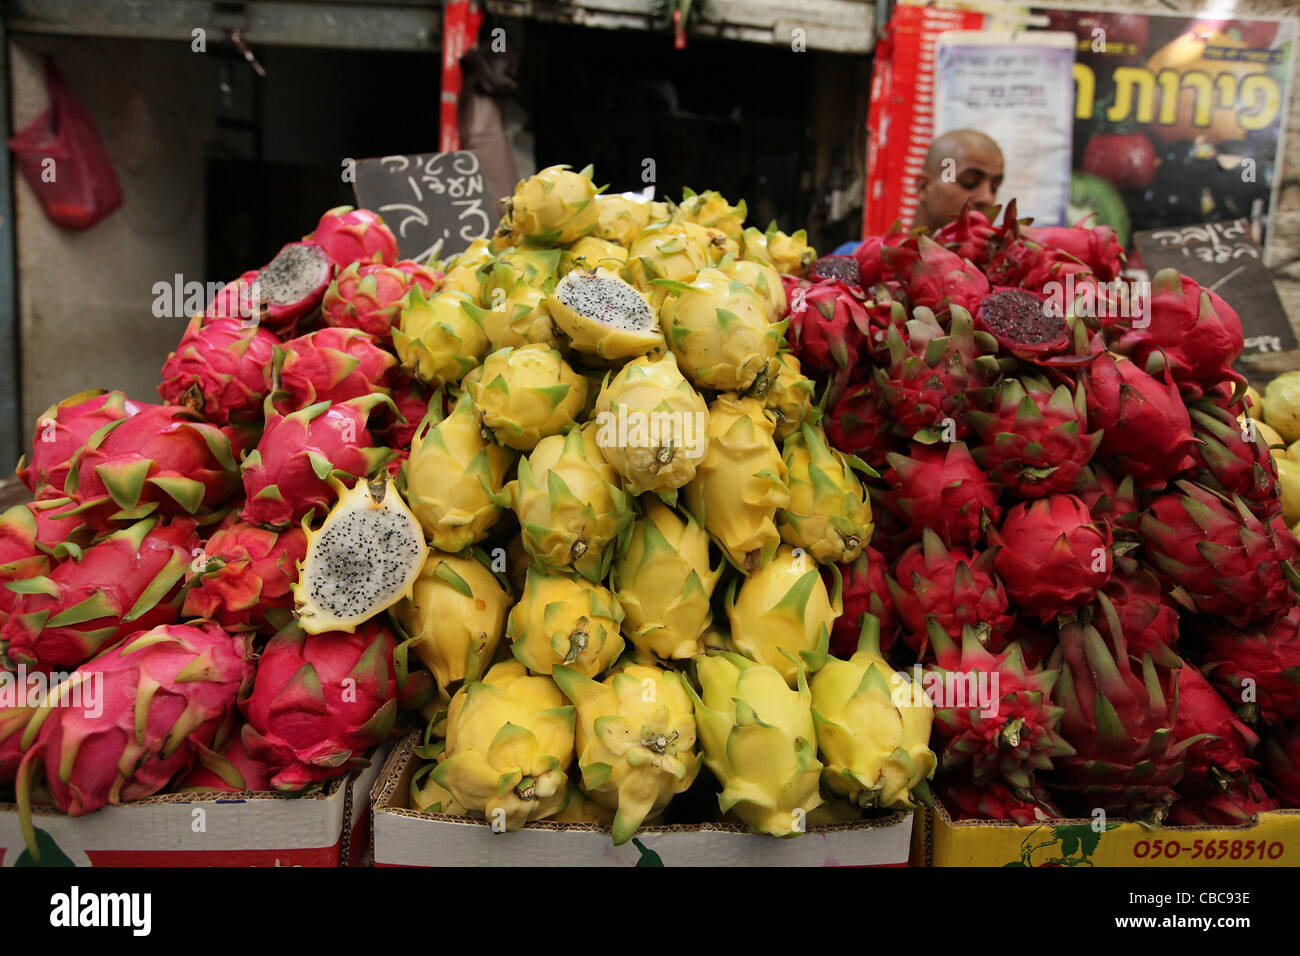 A market stall selling yellow and red pitaya - Stock Image